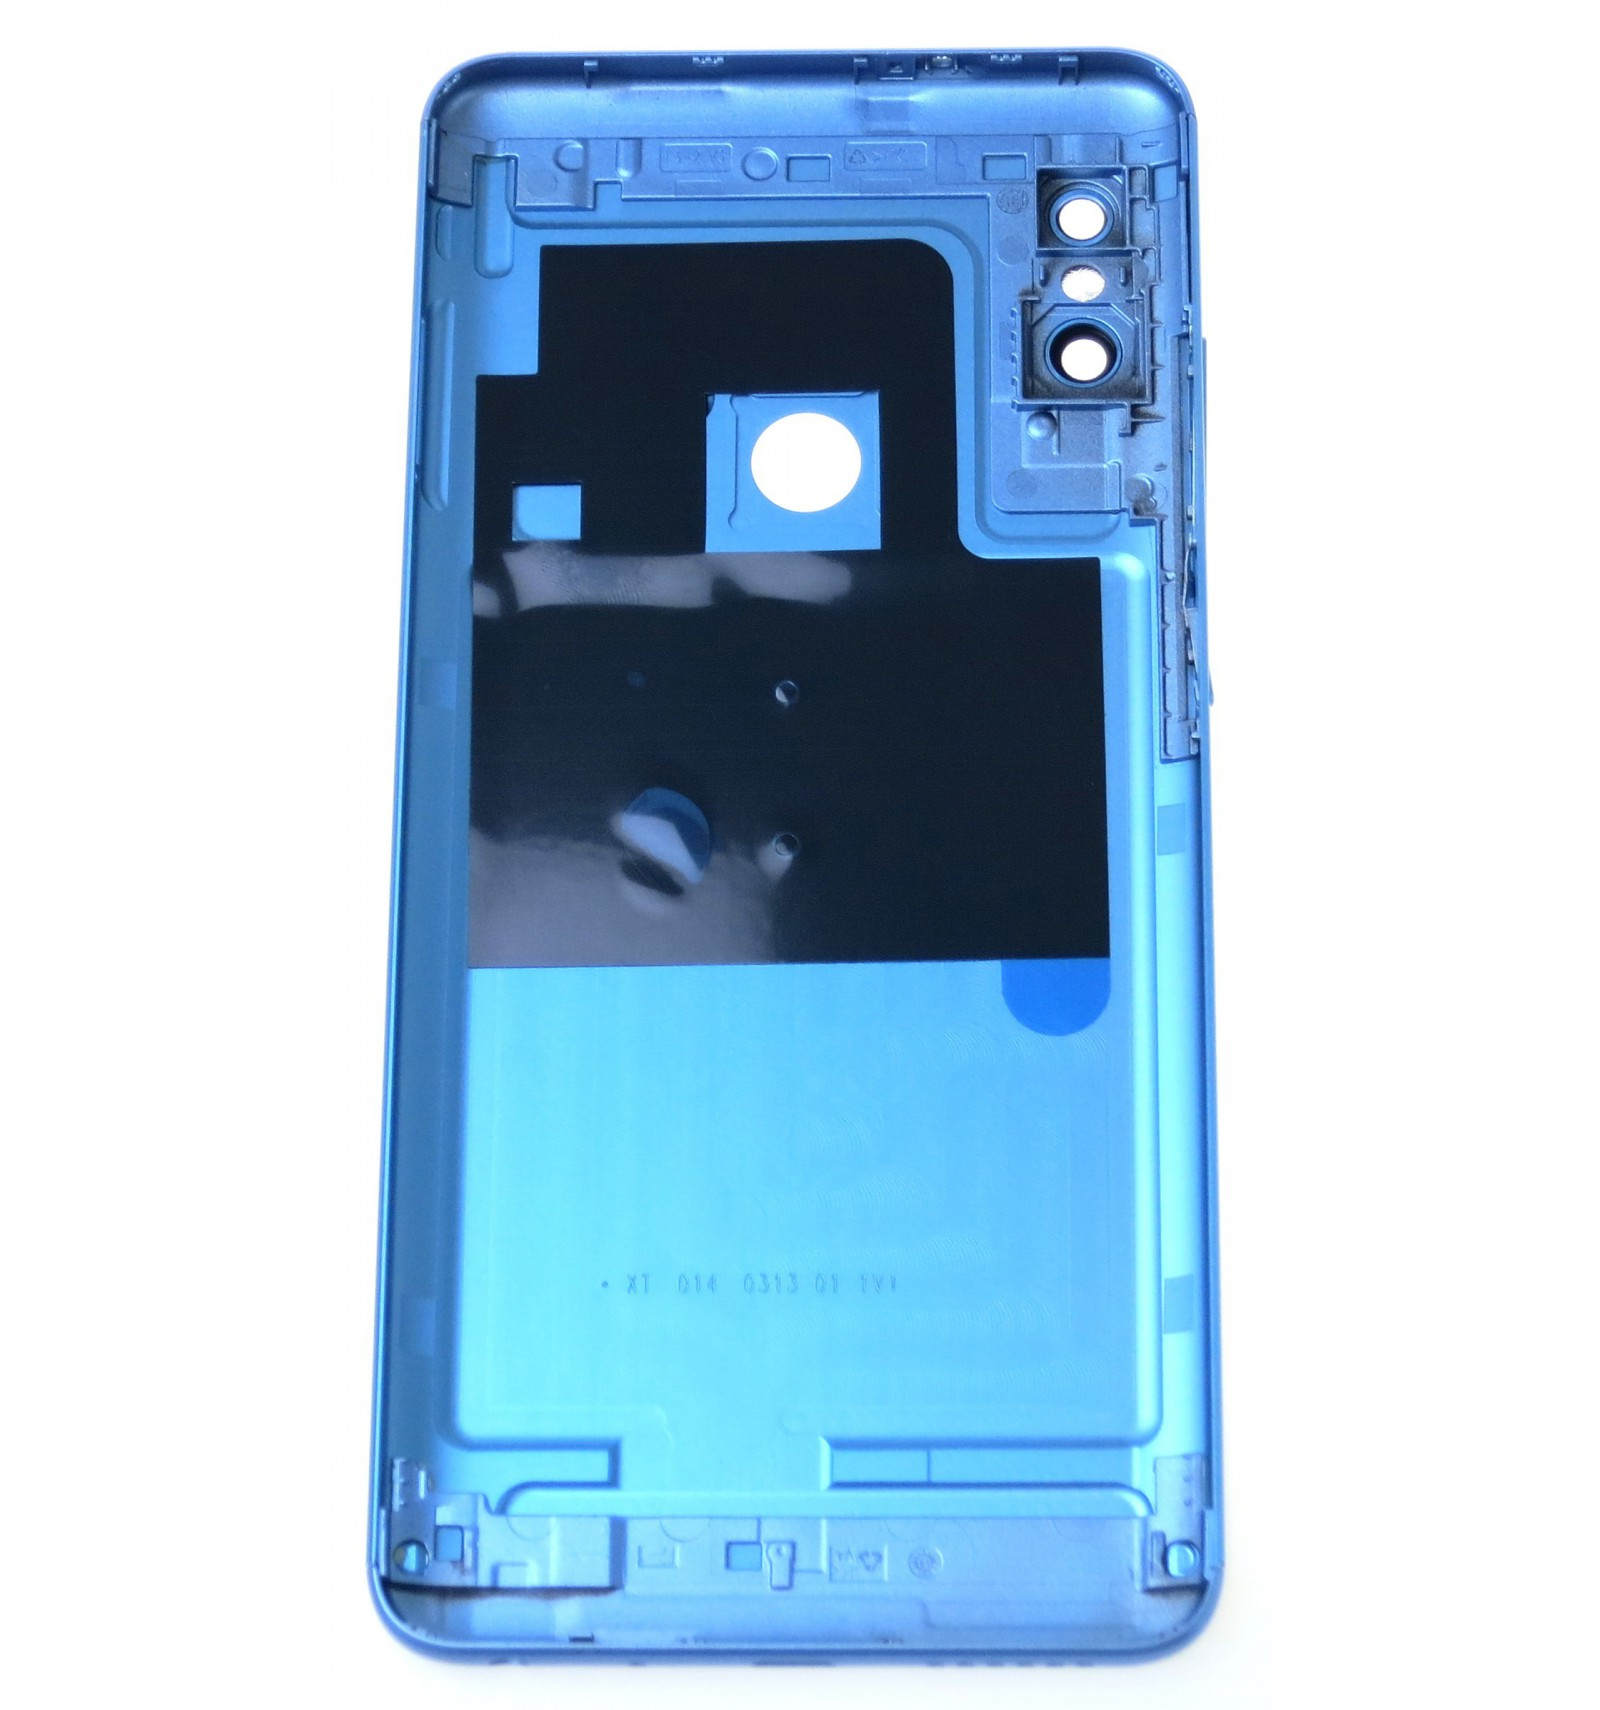 timeless design 4fdaf a1df8 Battery cover blue replacement for Xiaomi Redmi Note 5, Note 5 Pro ...